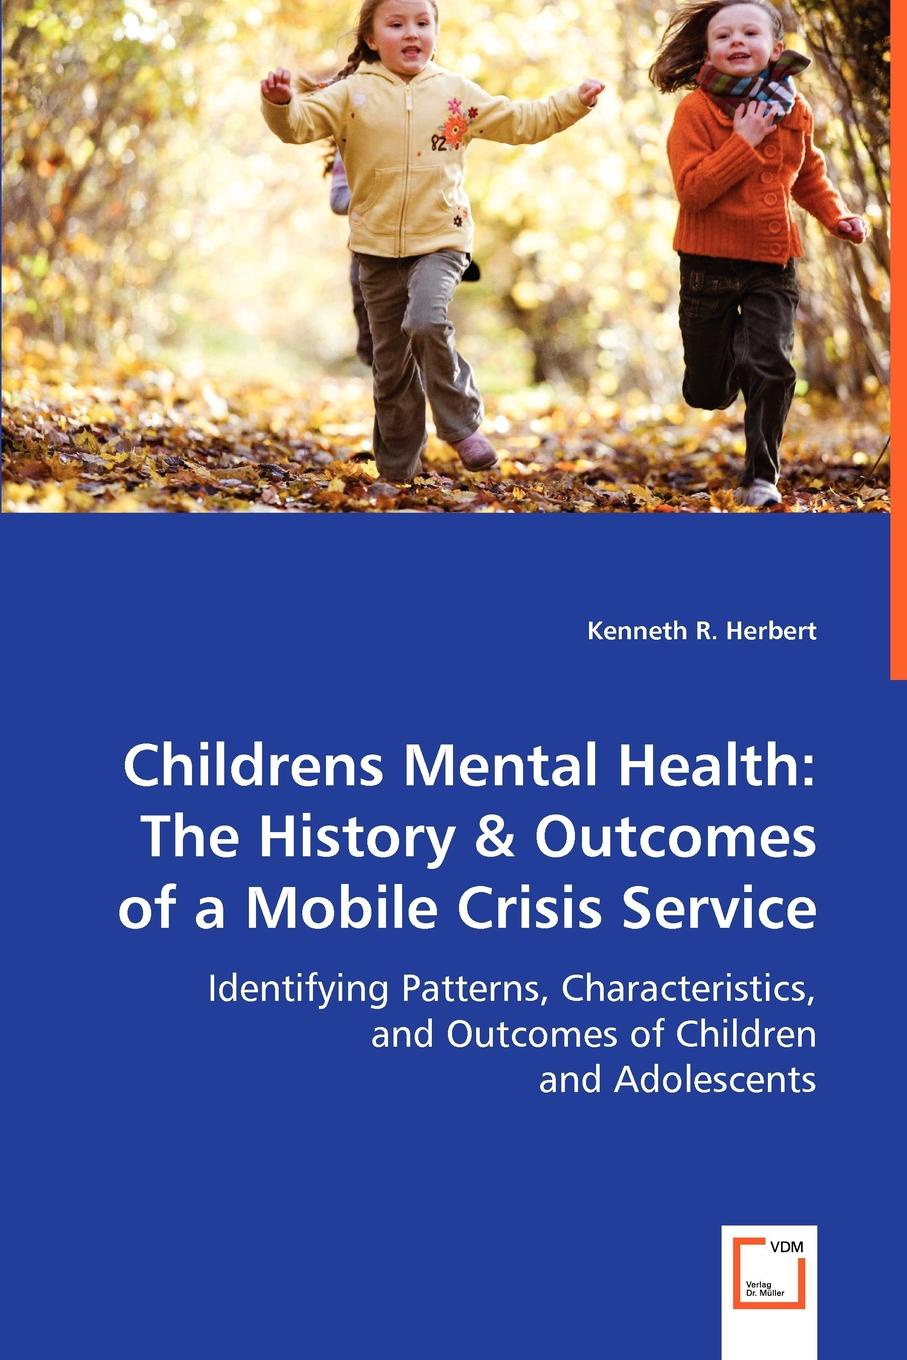 Kenneth R. Herbert Childrens Mental Health. The History & Outcomes of a Mobile Crisis Service walker carl work and the mental health crisis in britain